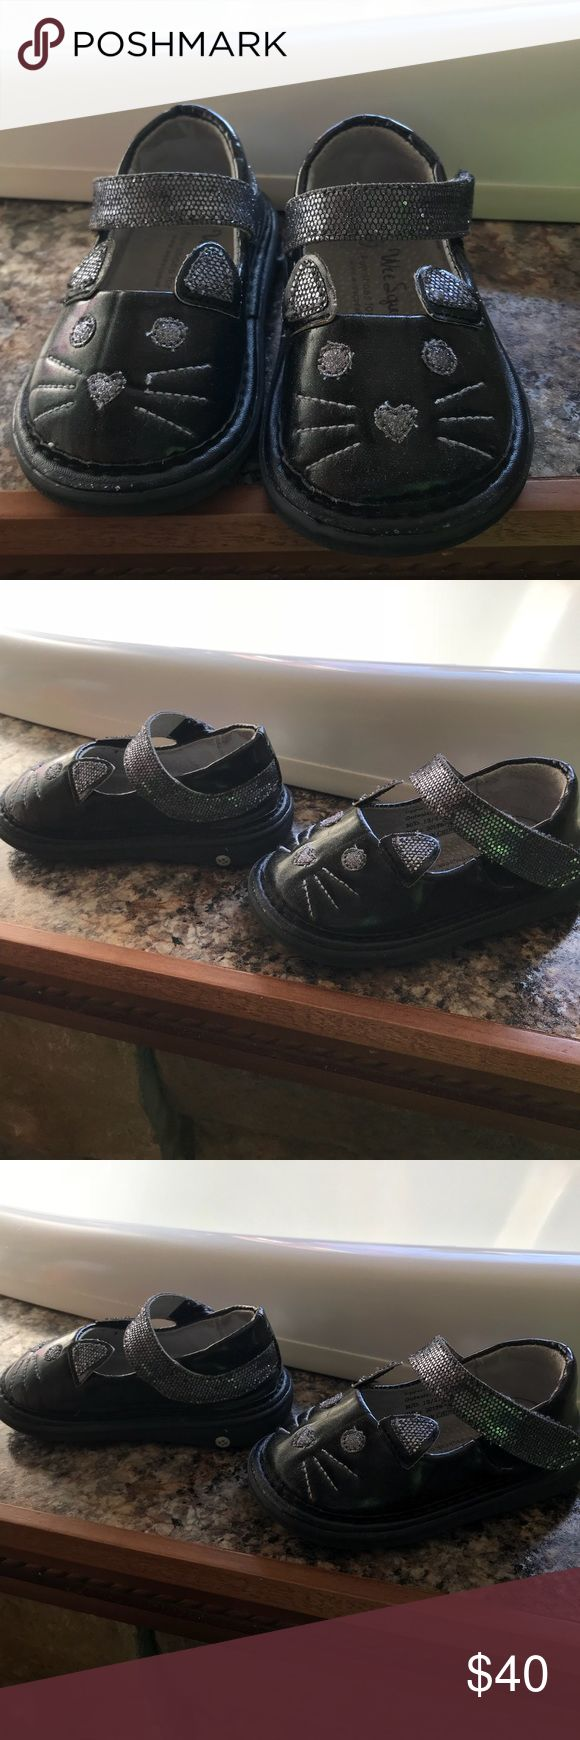 We Squeak Size 5 Shoes These are squeaky shoes every step they do squeak worn a few times good condition tho ! we Squeak Shoes Baby & Walker